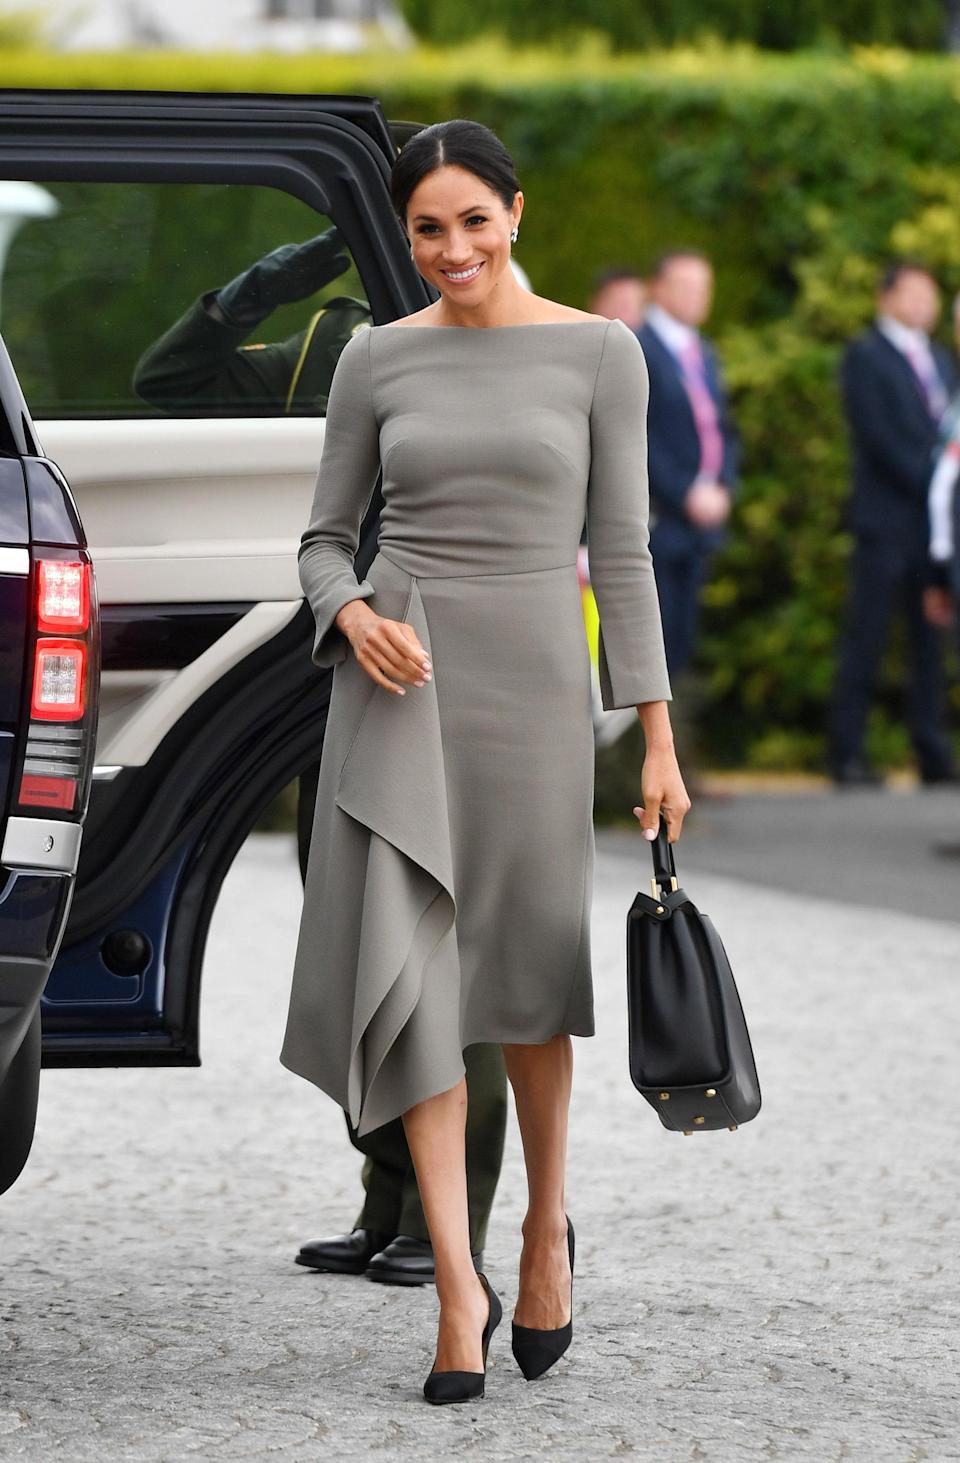 The Duchess of Sussex arrives at the President's residence for the second day of her royal tour of Ireland. [Photo: PA]